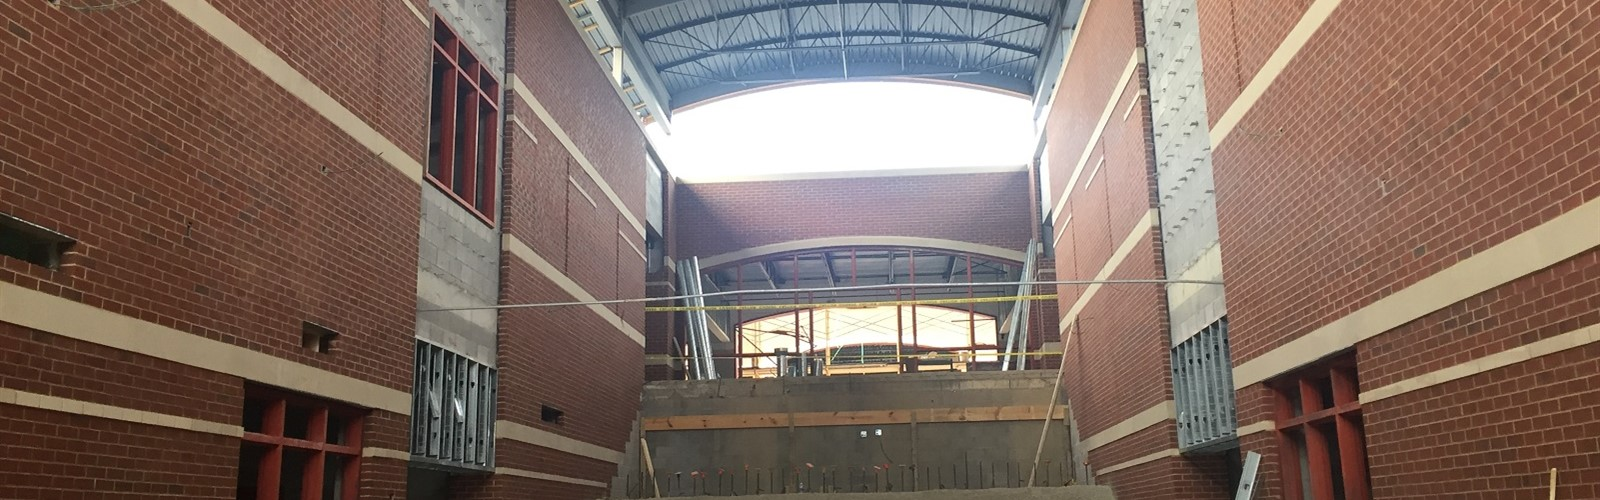 Grand Entryway of New HighSchool.